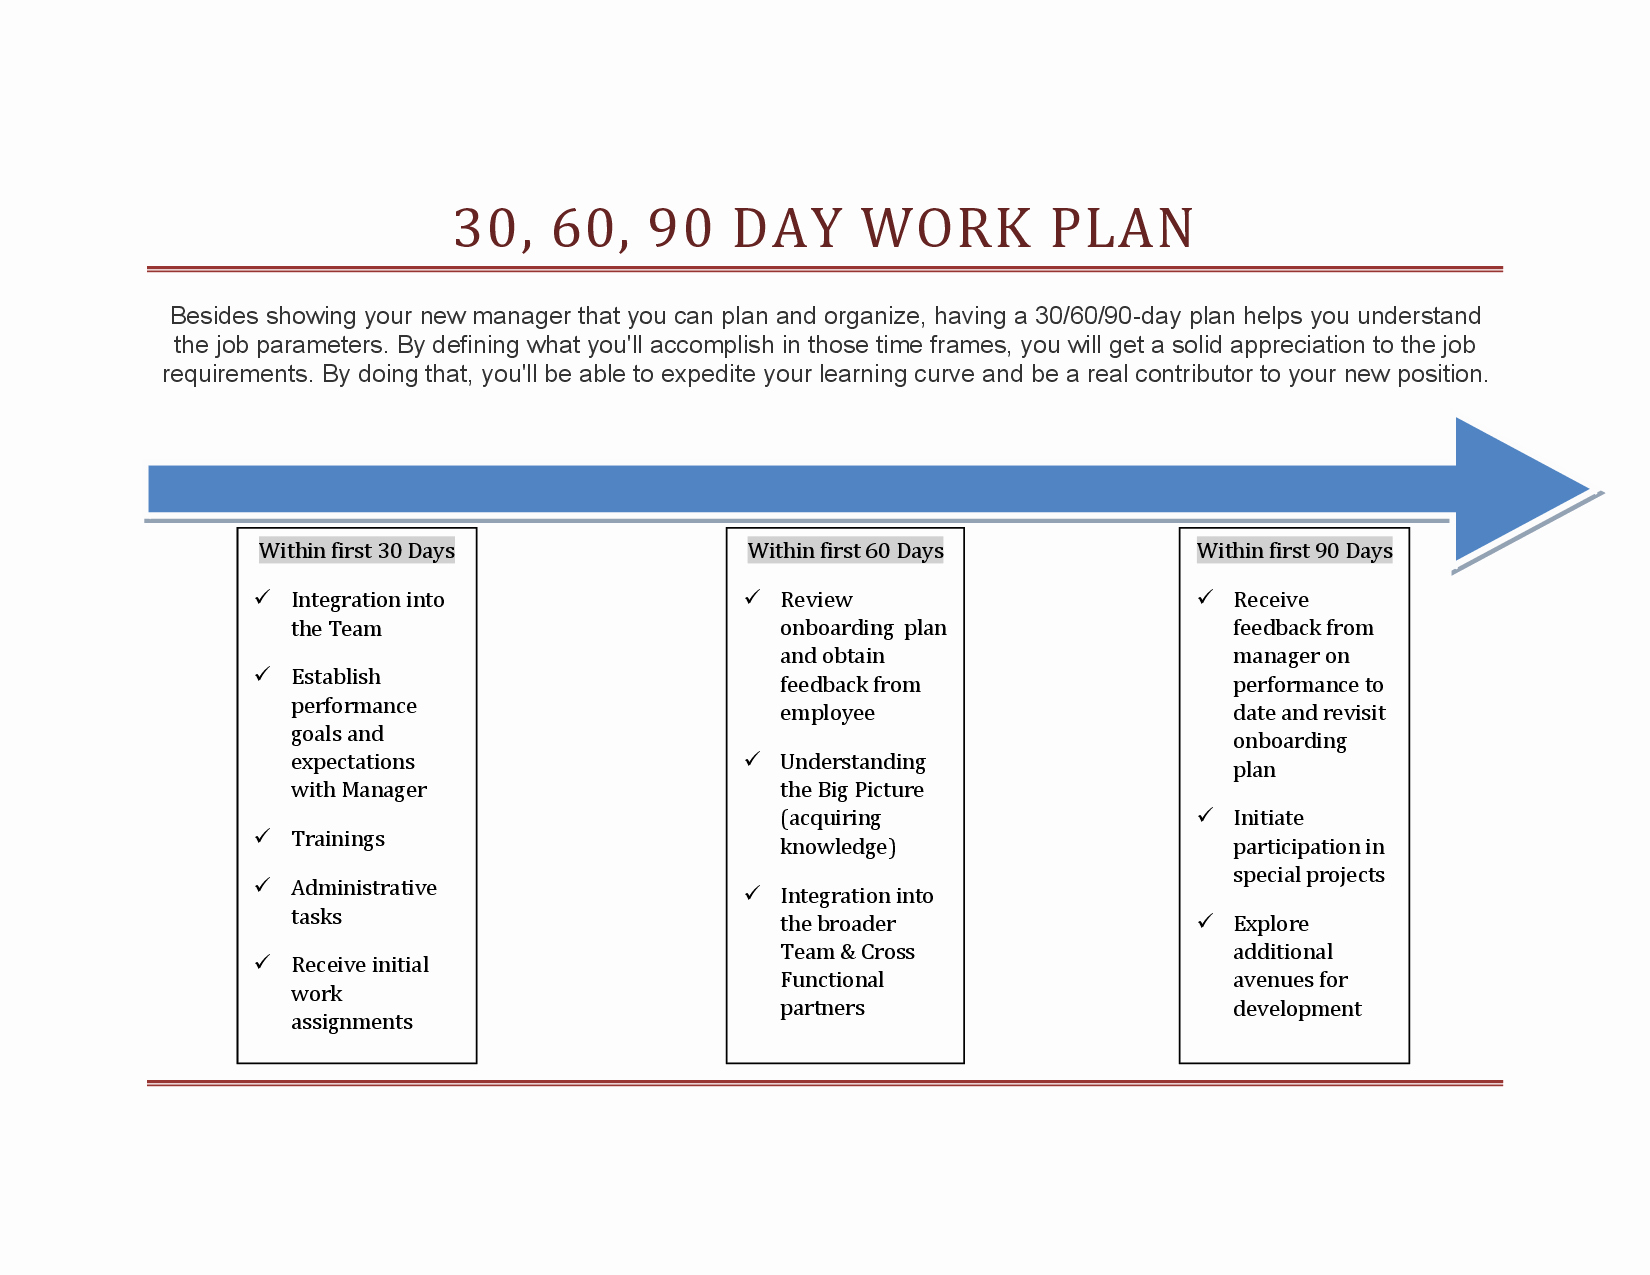 90 Day Action Plan Template Inspirational 30 60 90 Day Work Plan Templatepdf by Tinammckenna